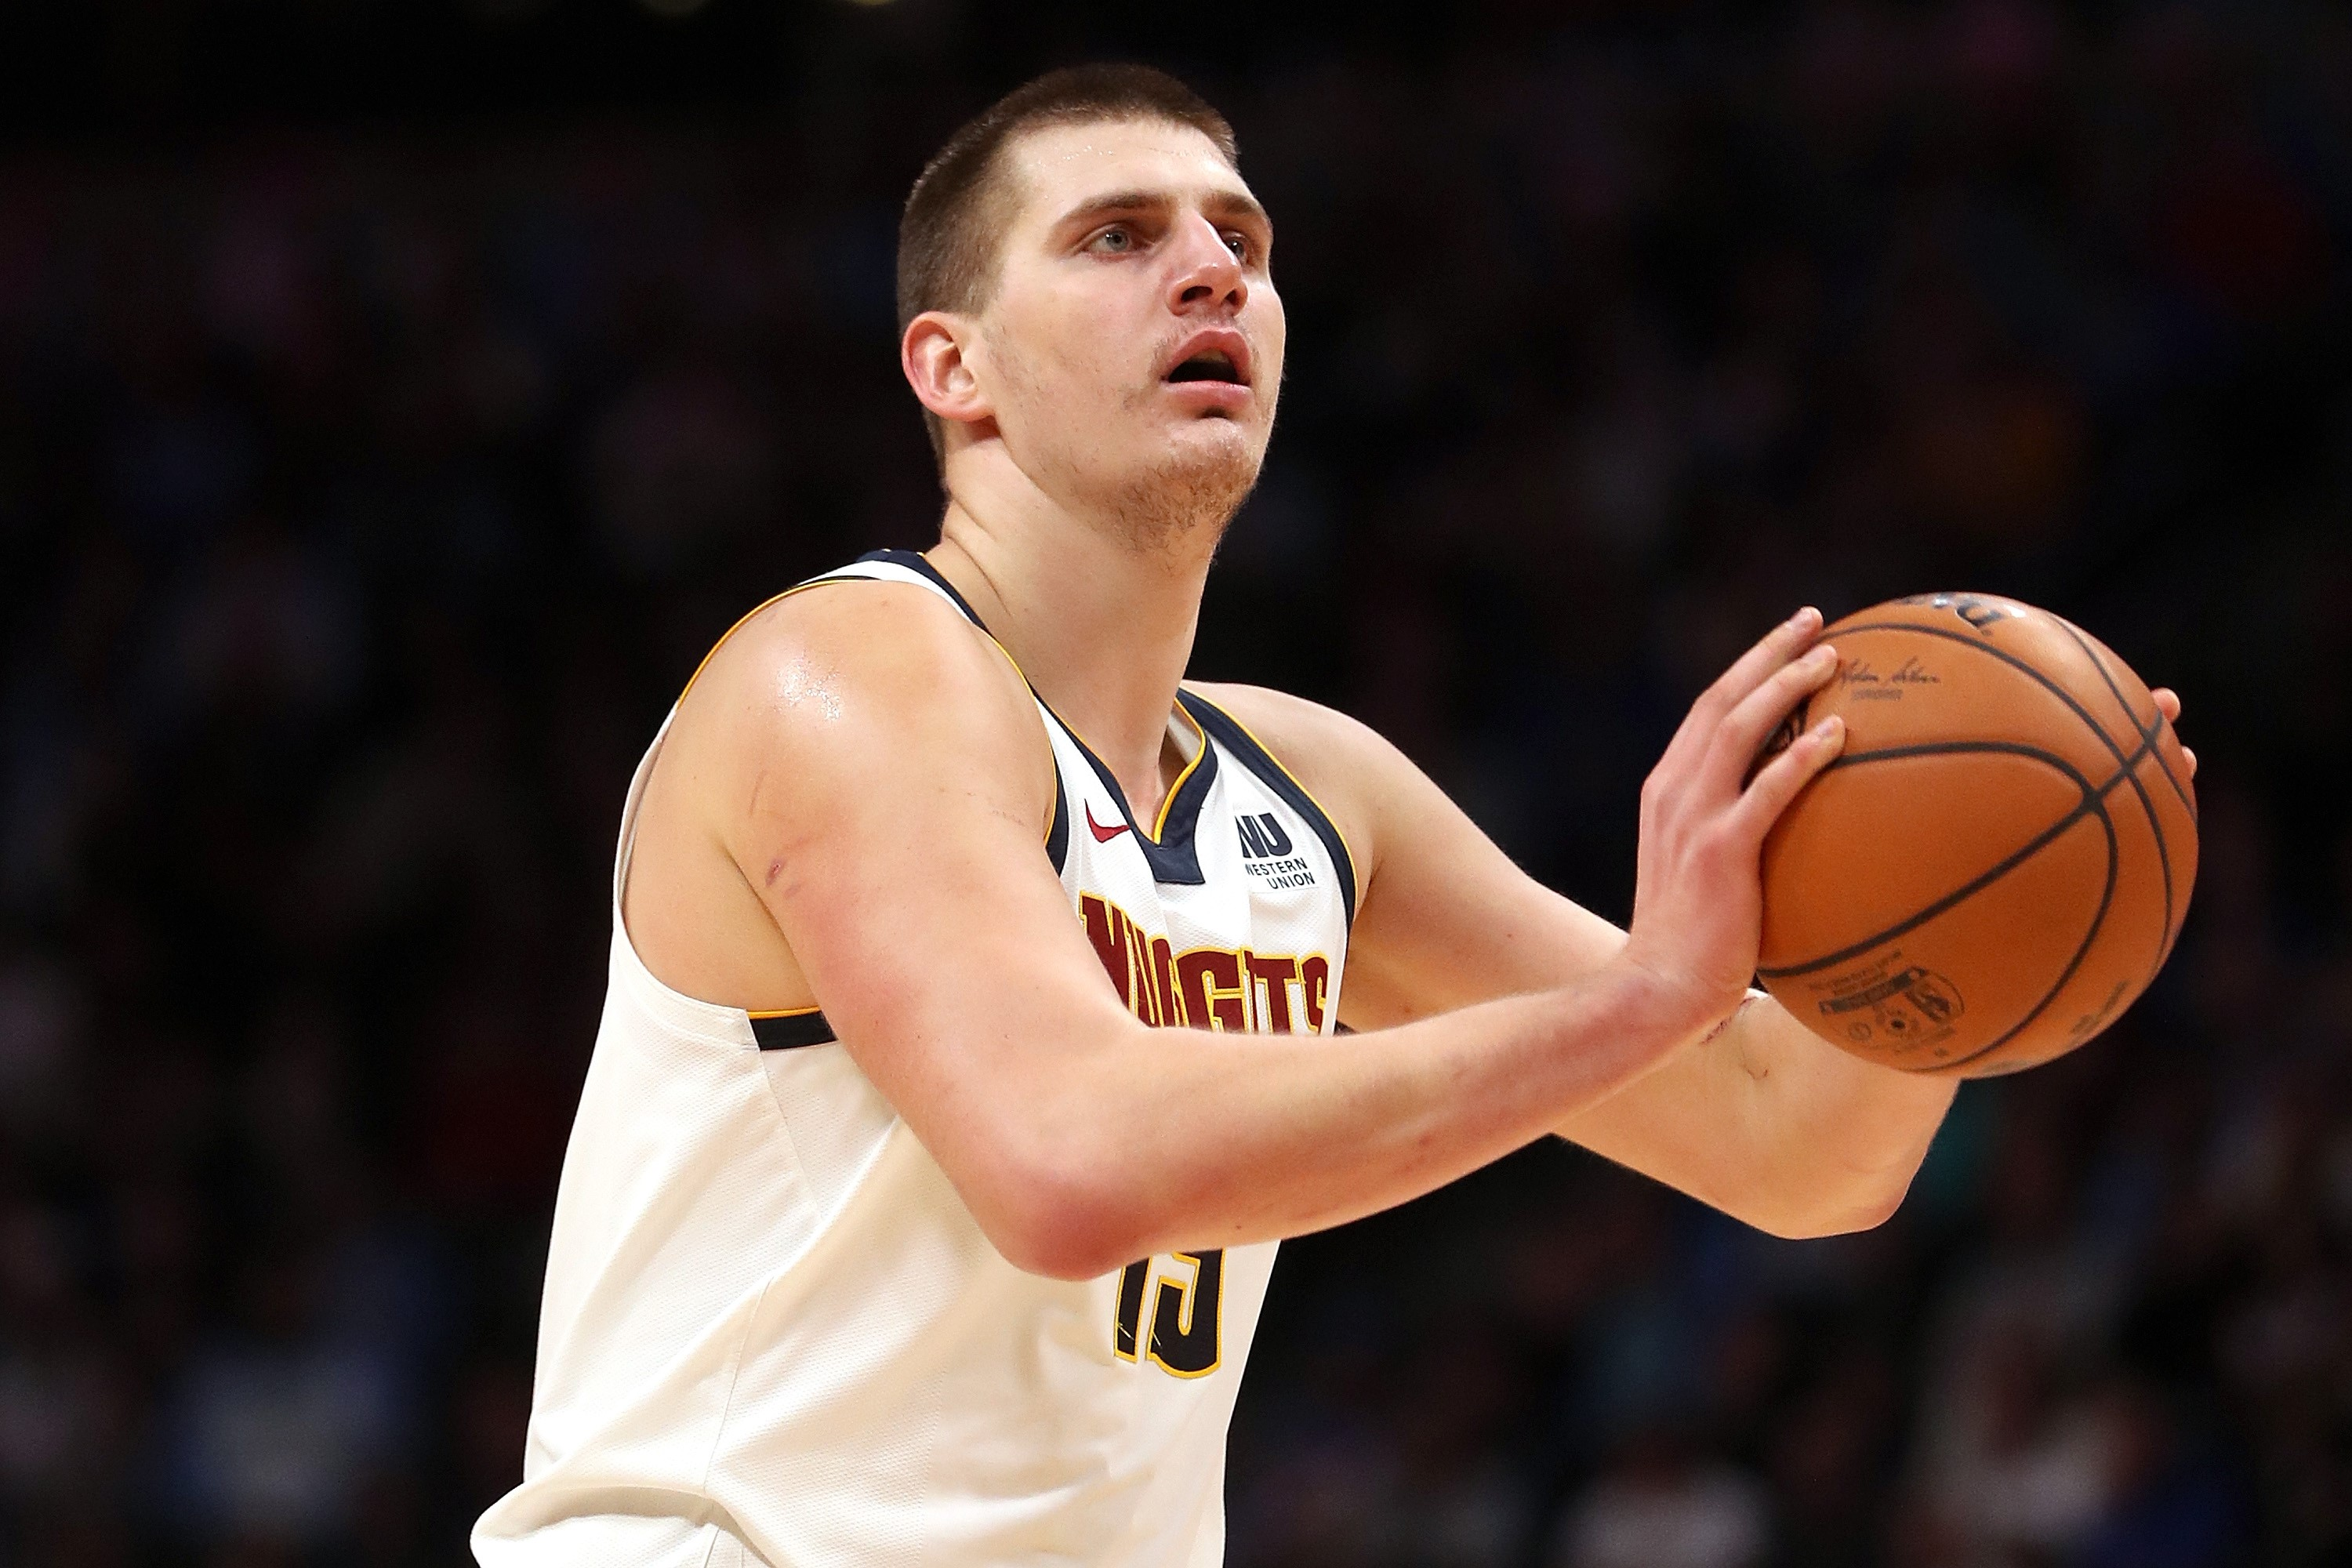 Nikola Jokic (Denver Nuggets)